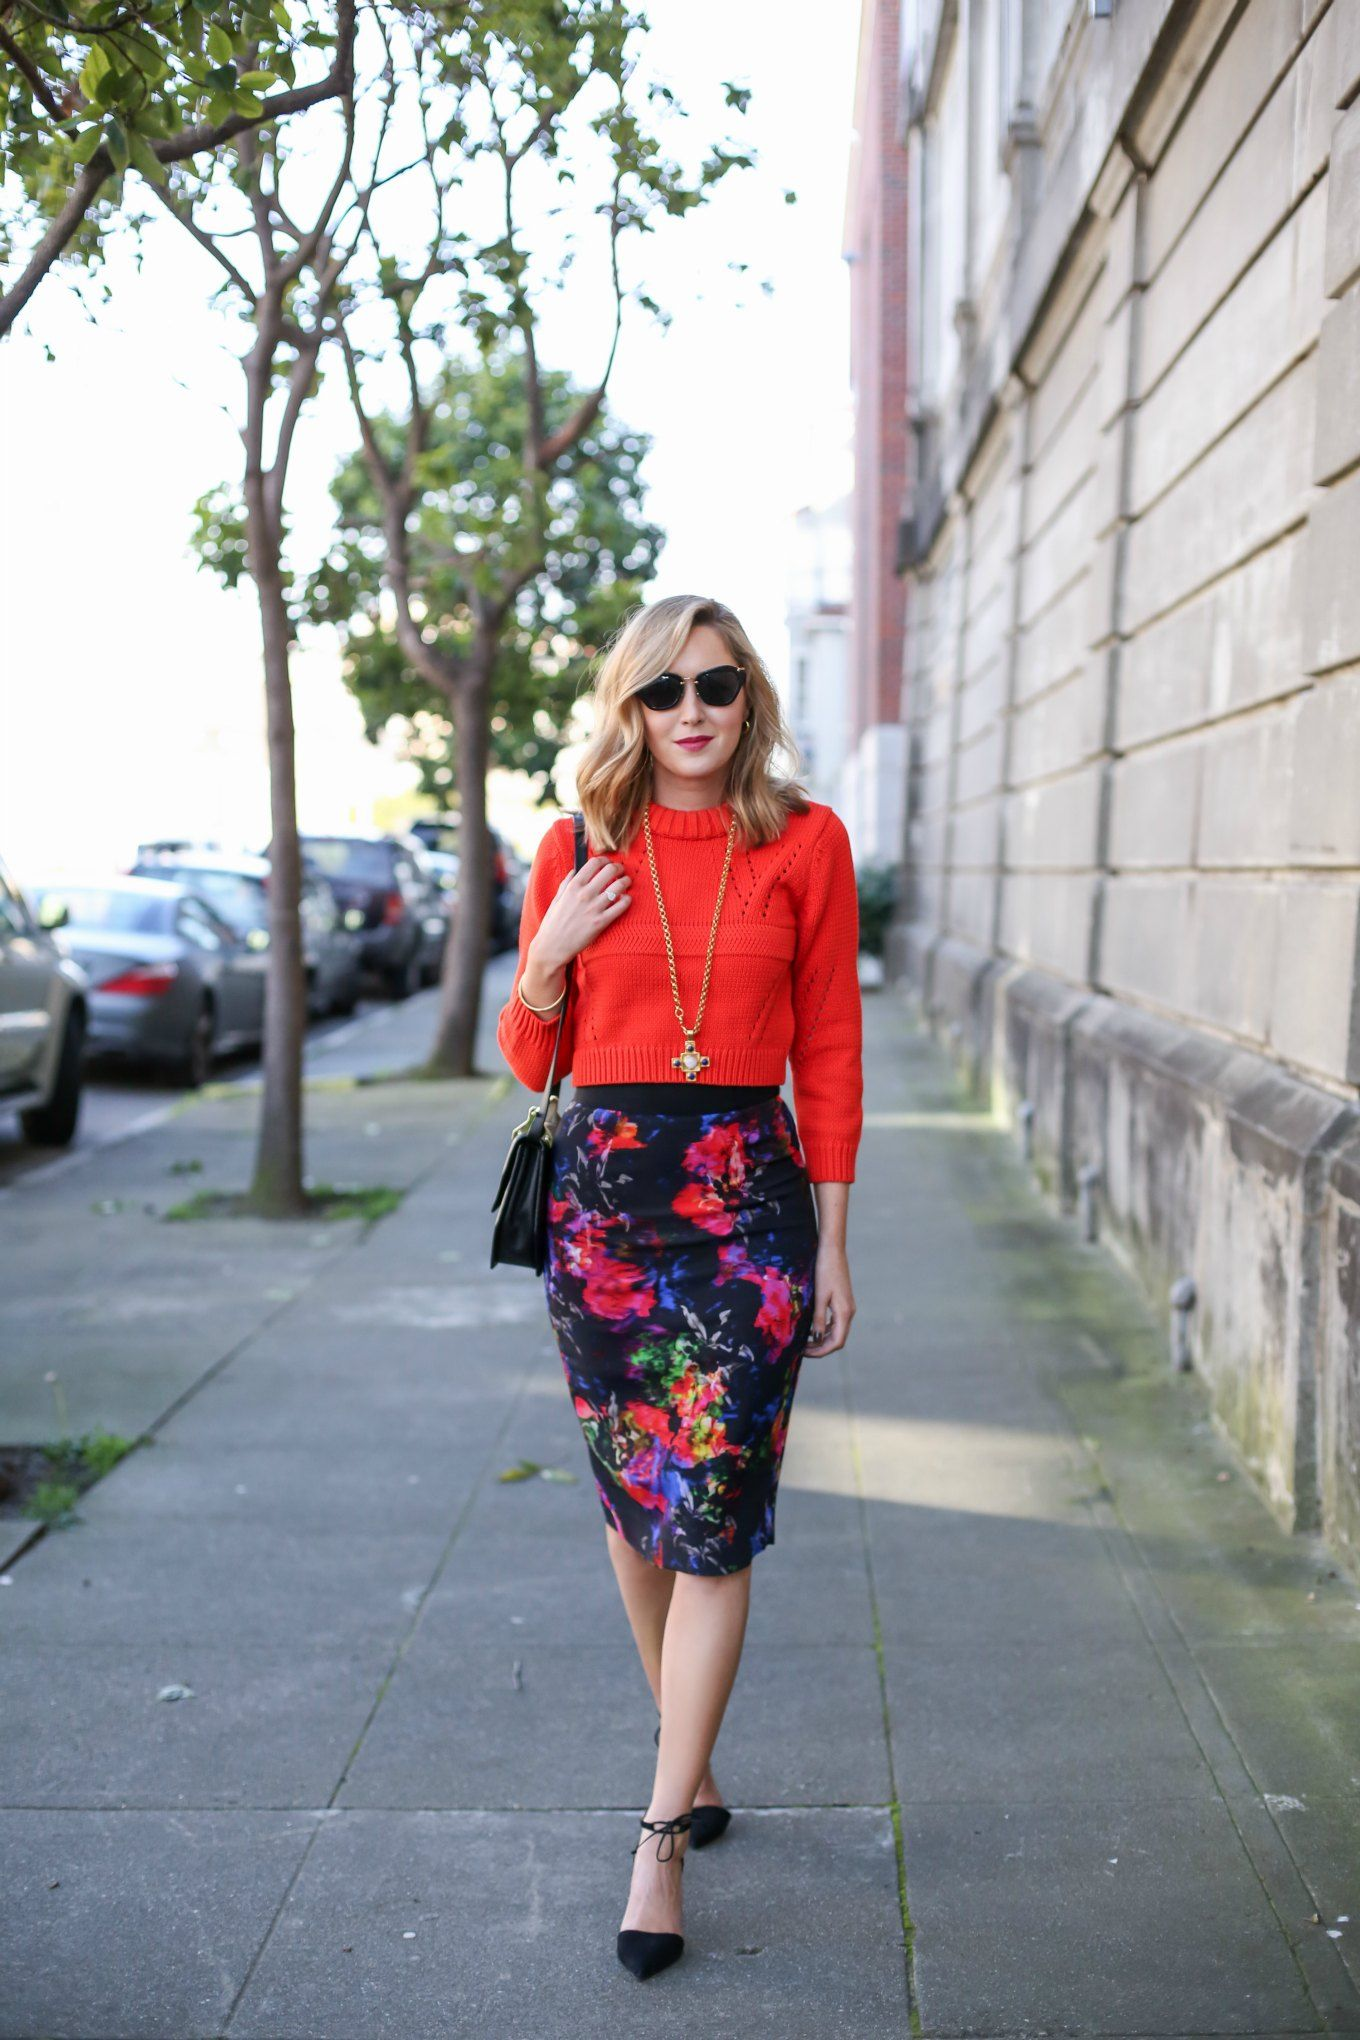 b76e6b5f99 5 Work Outfit Ideas for Spring in 2019 | Working attire | Floral ...